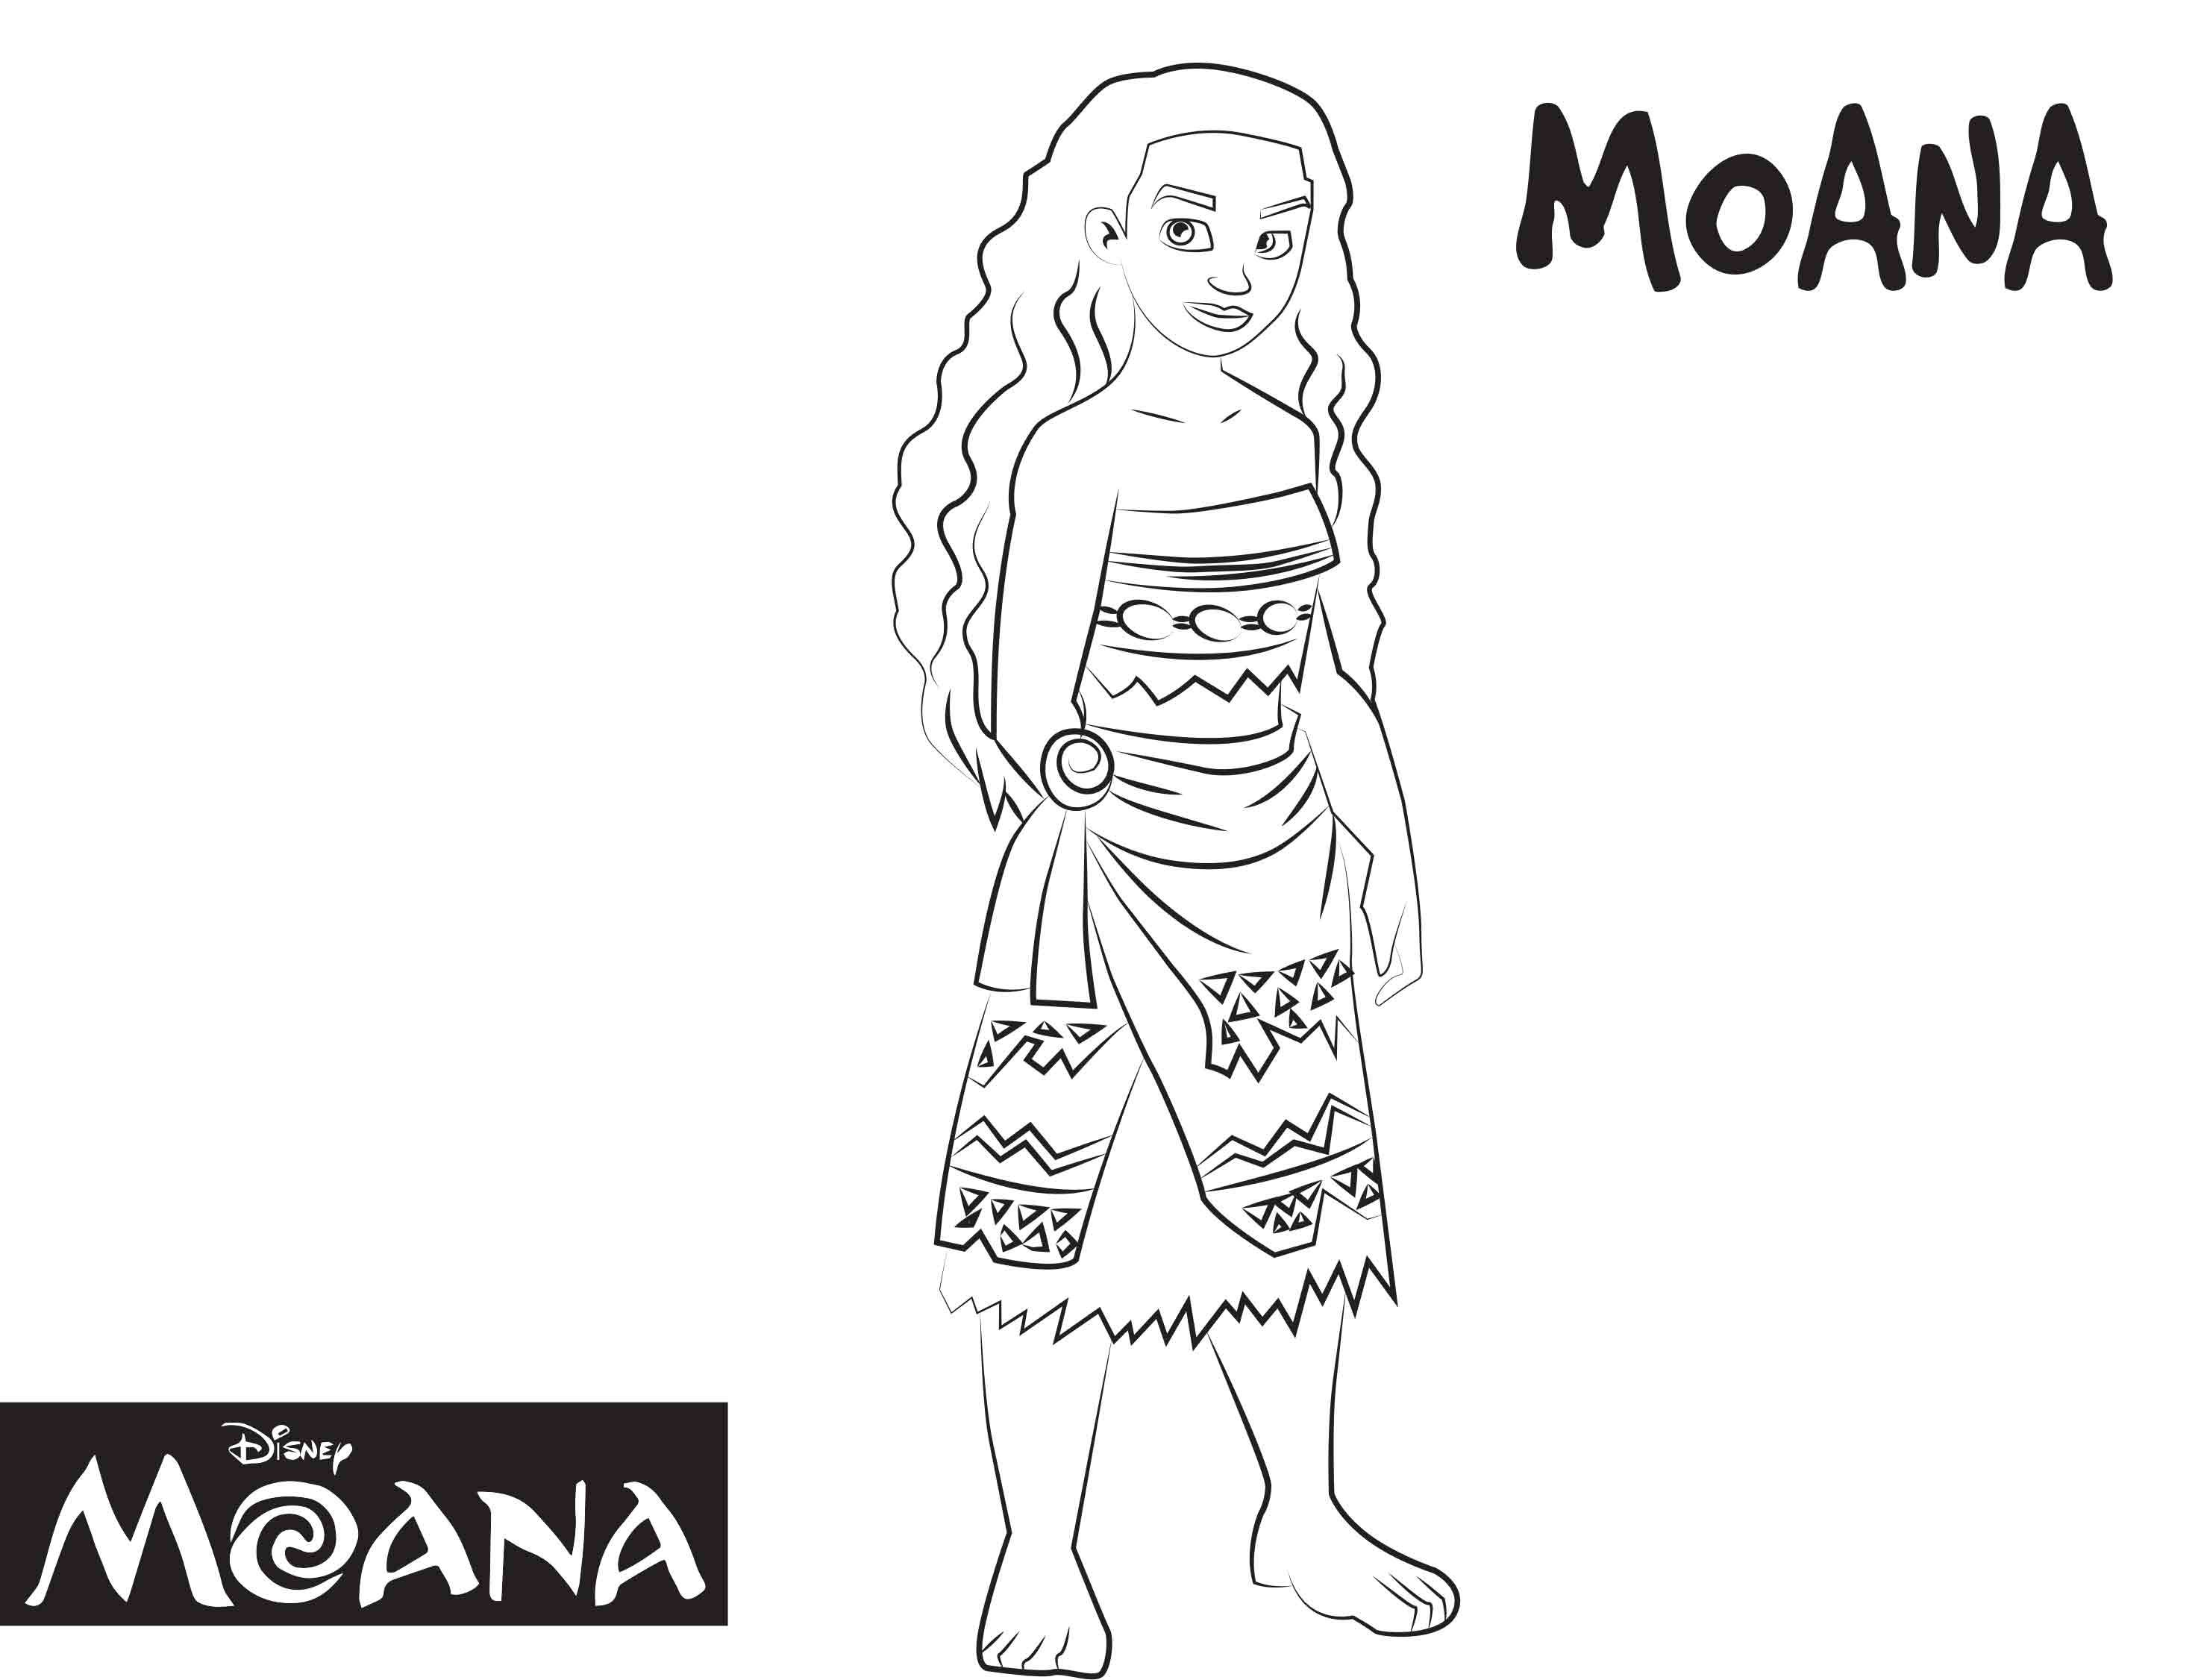 Disney hades coloring page - Cute Moana Disney Coloring Pages Printable And Coloring Book To Print For Free Find More Coloring Pages Online For Kids And Adults Of Cute Moana Disney